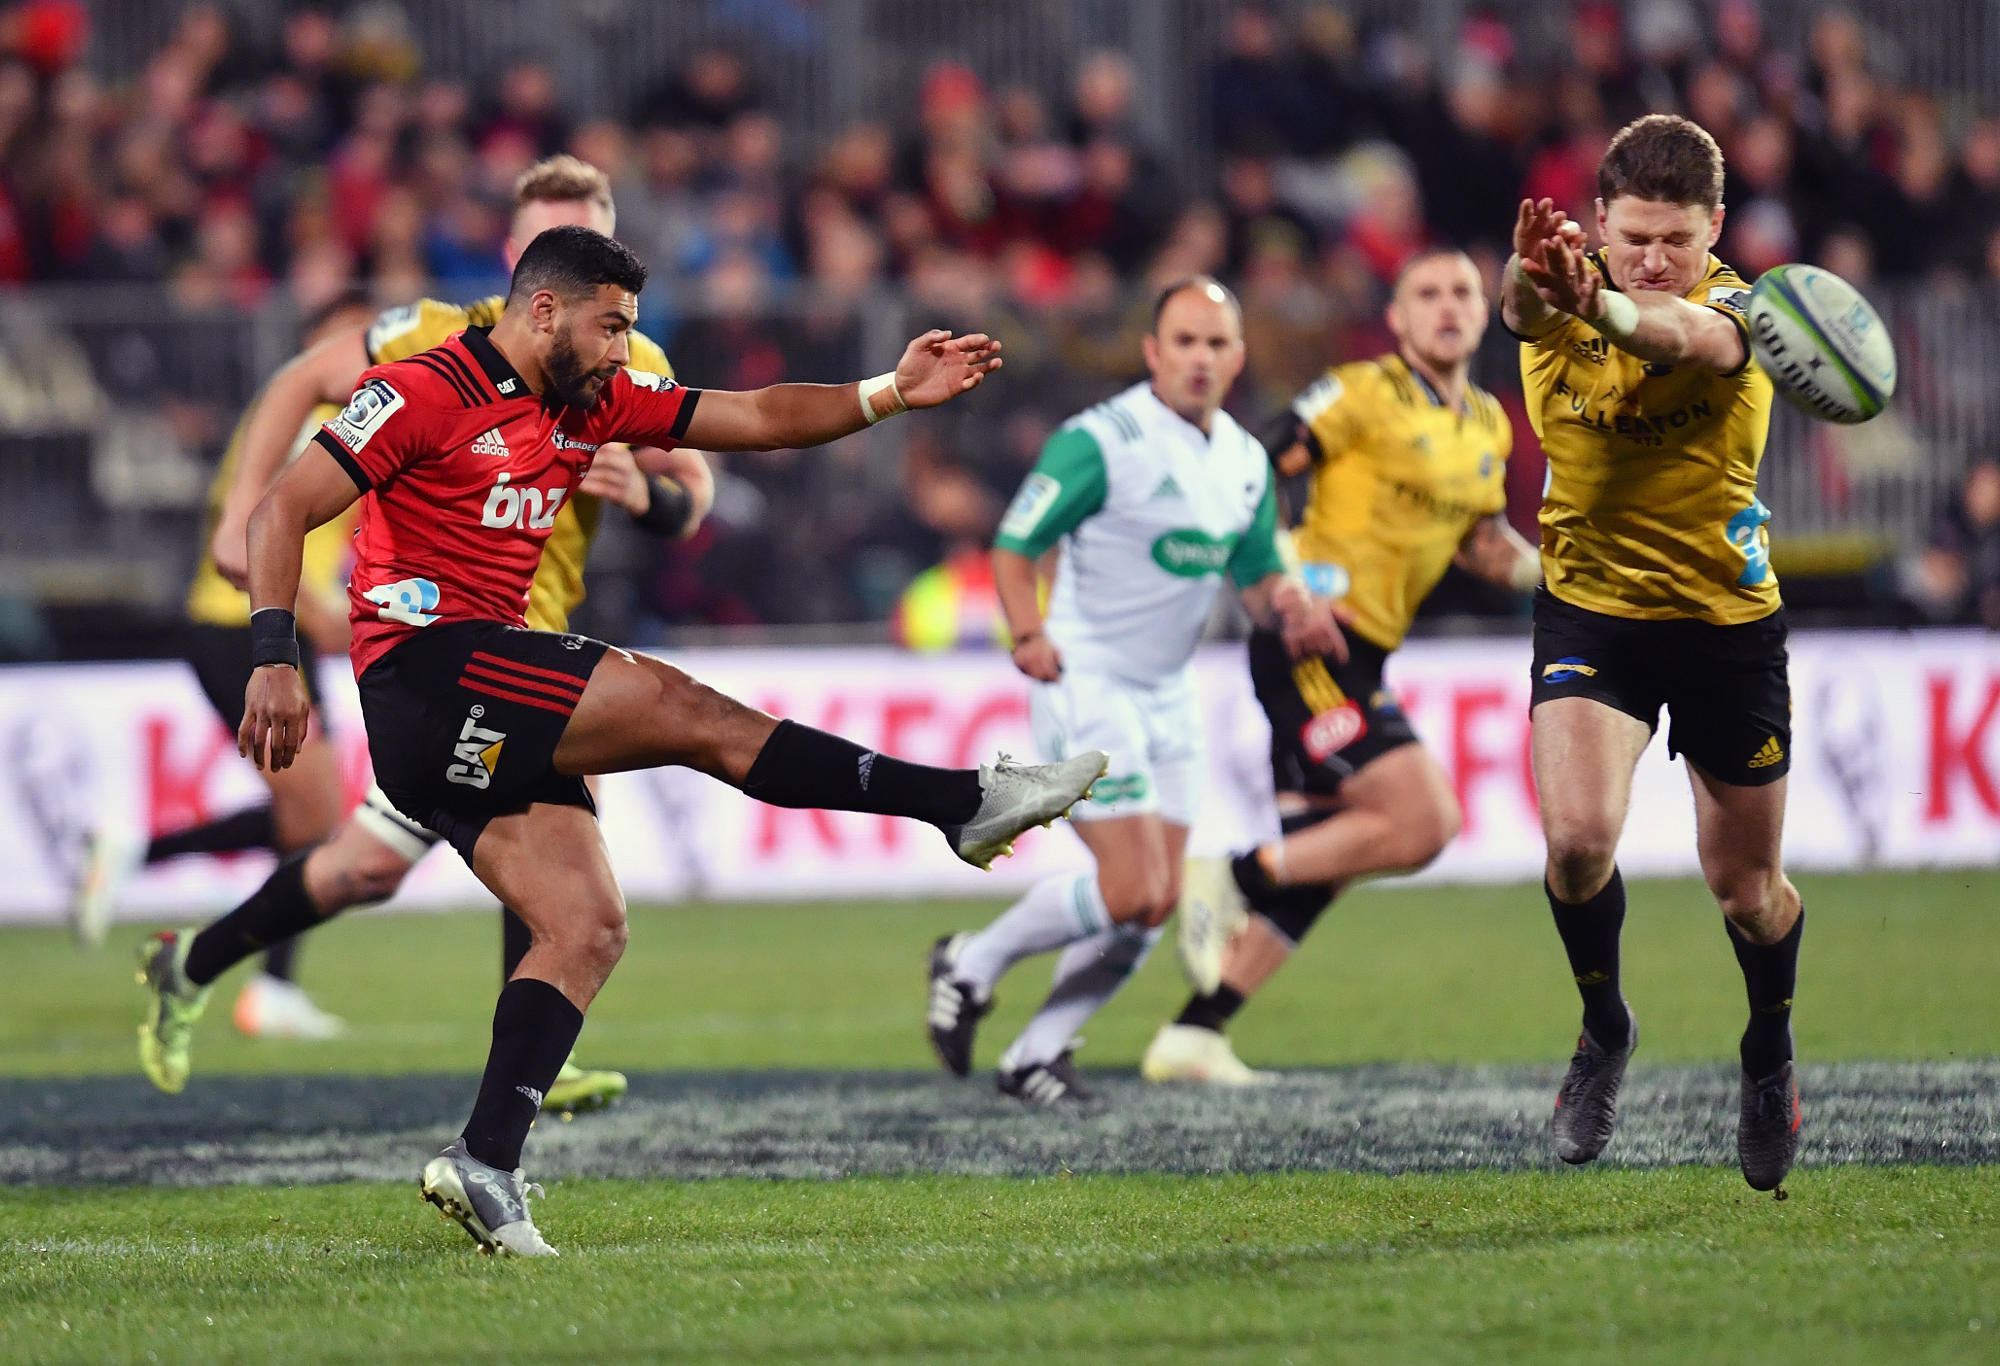 Richie Mo'unga of the Crusaders kicks the ball